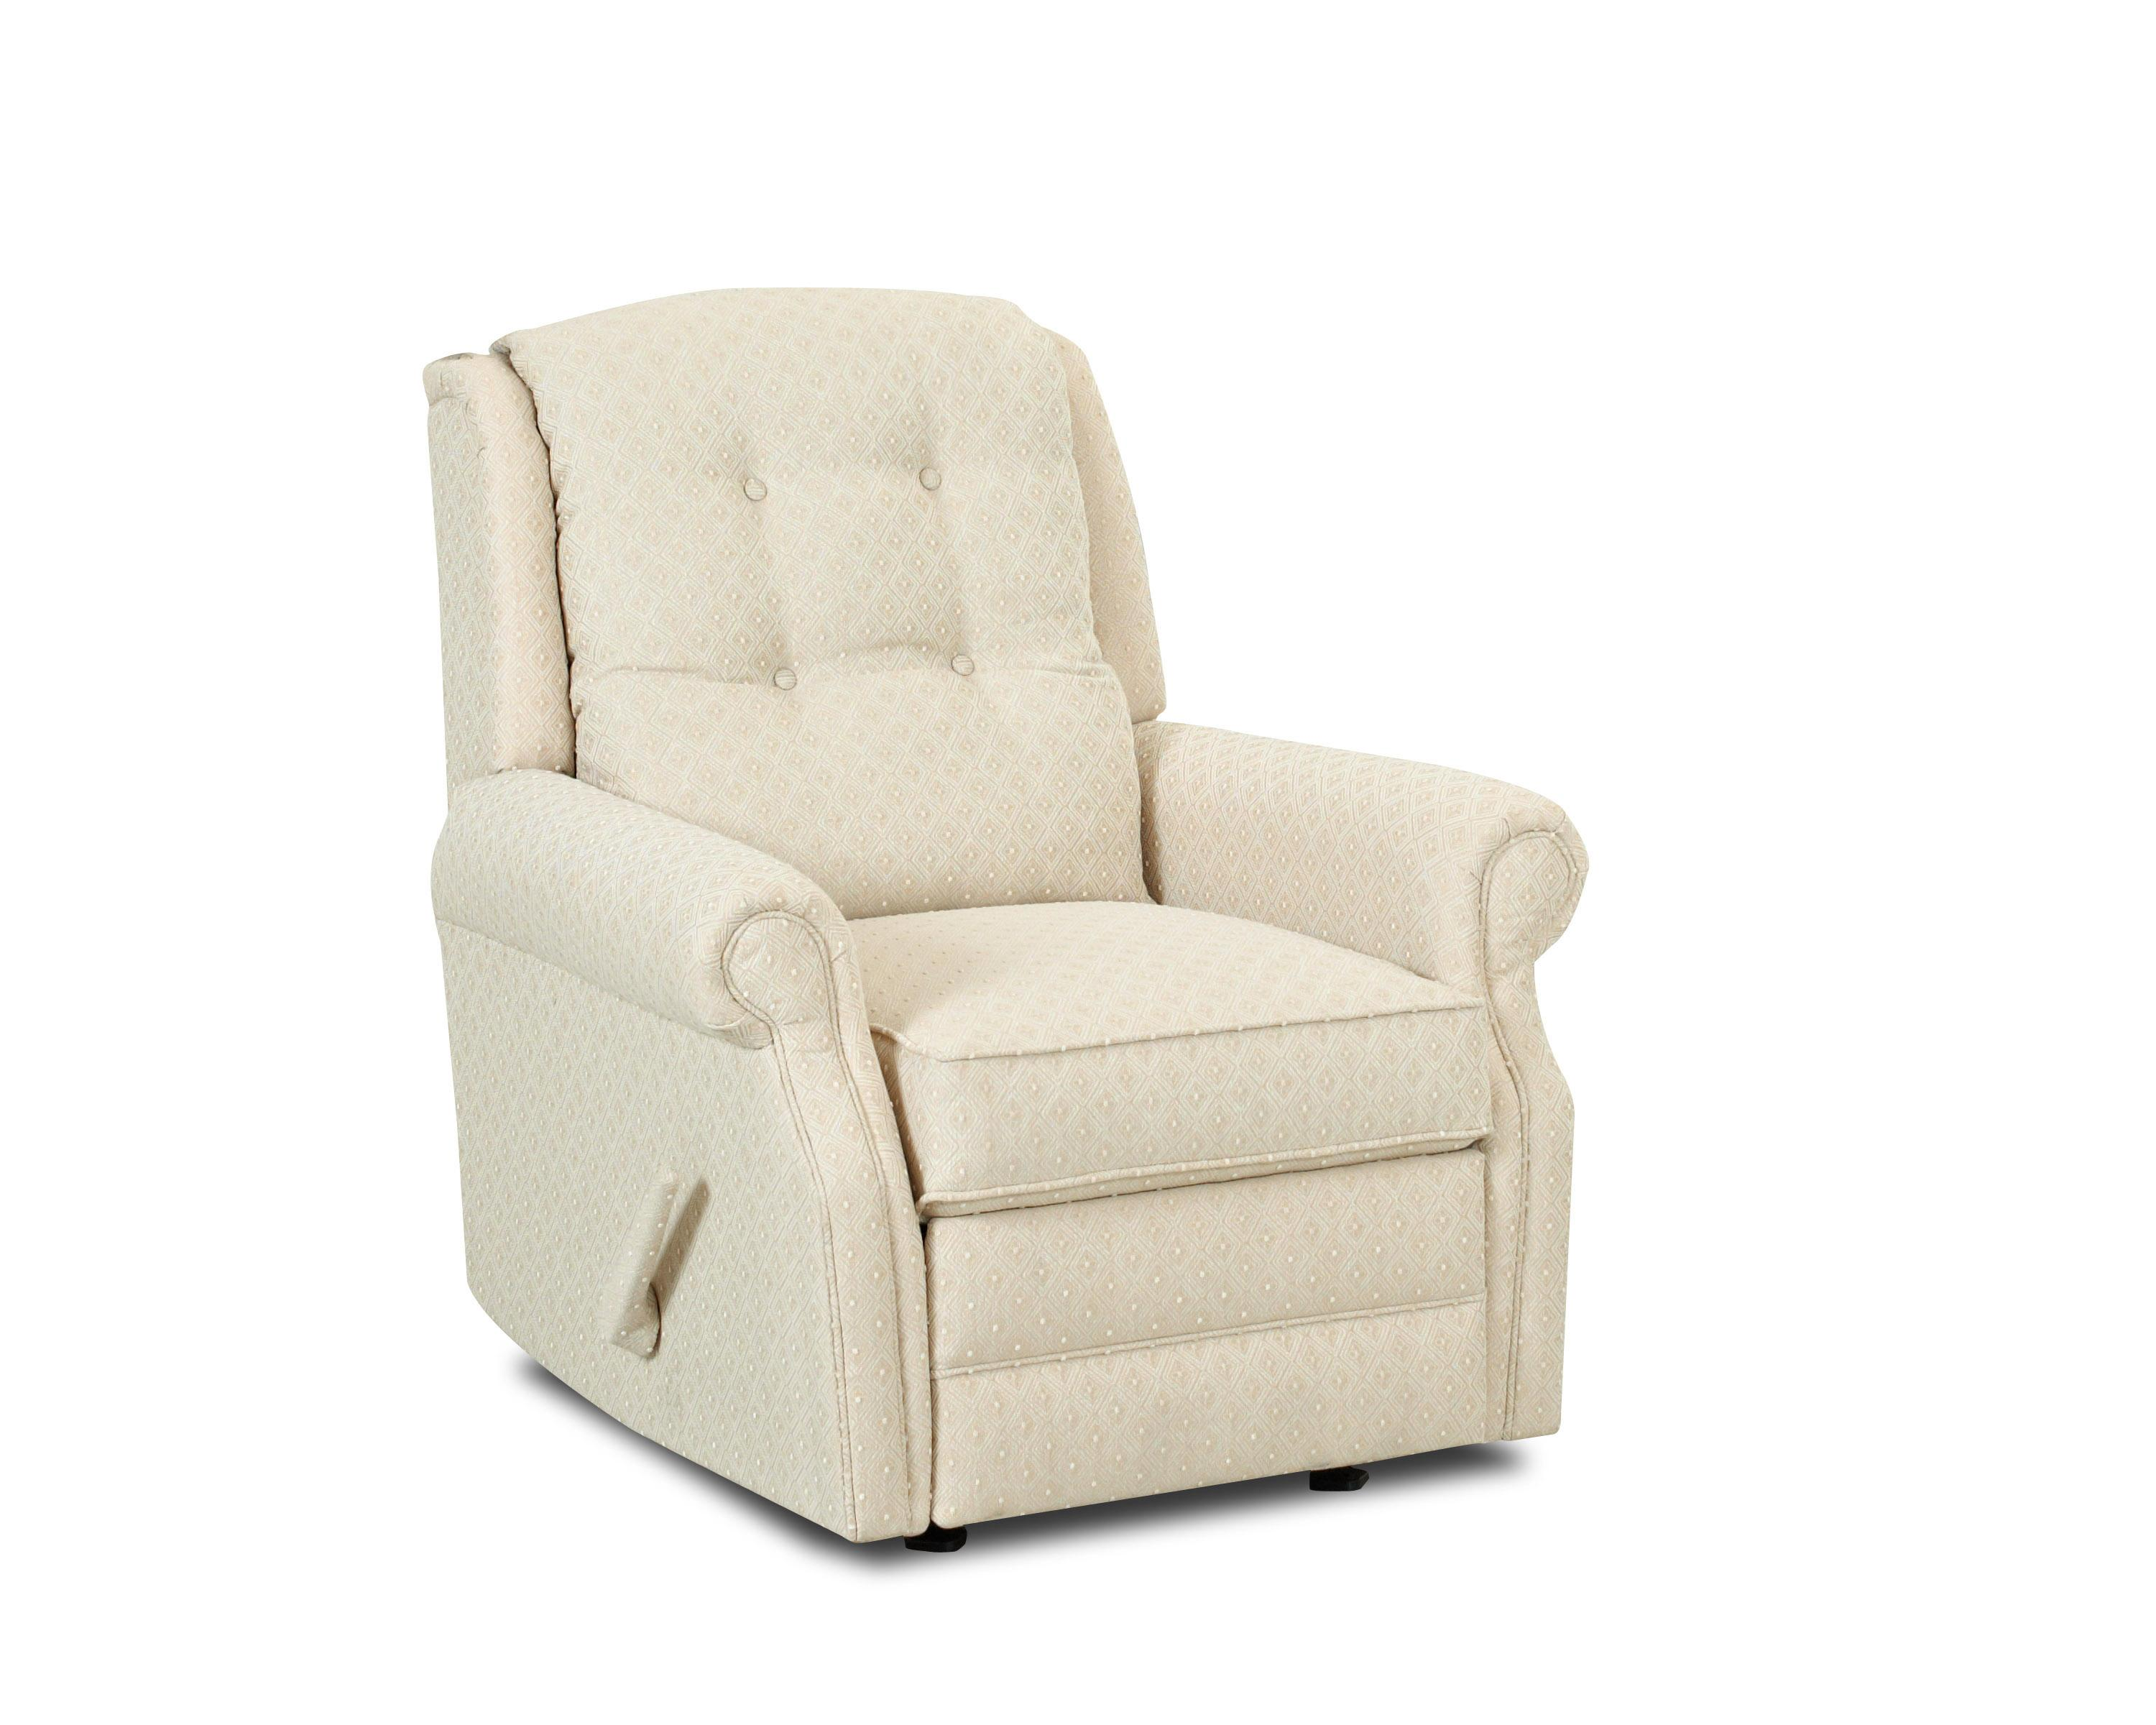 Rocking recliner chairs - Transitional Manual Rocking Reclining Chair With Button Tufting